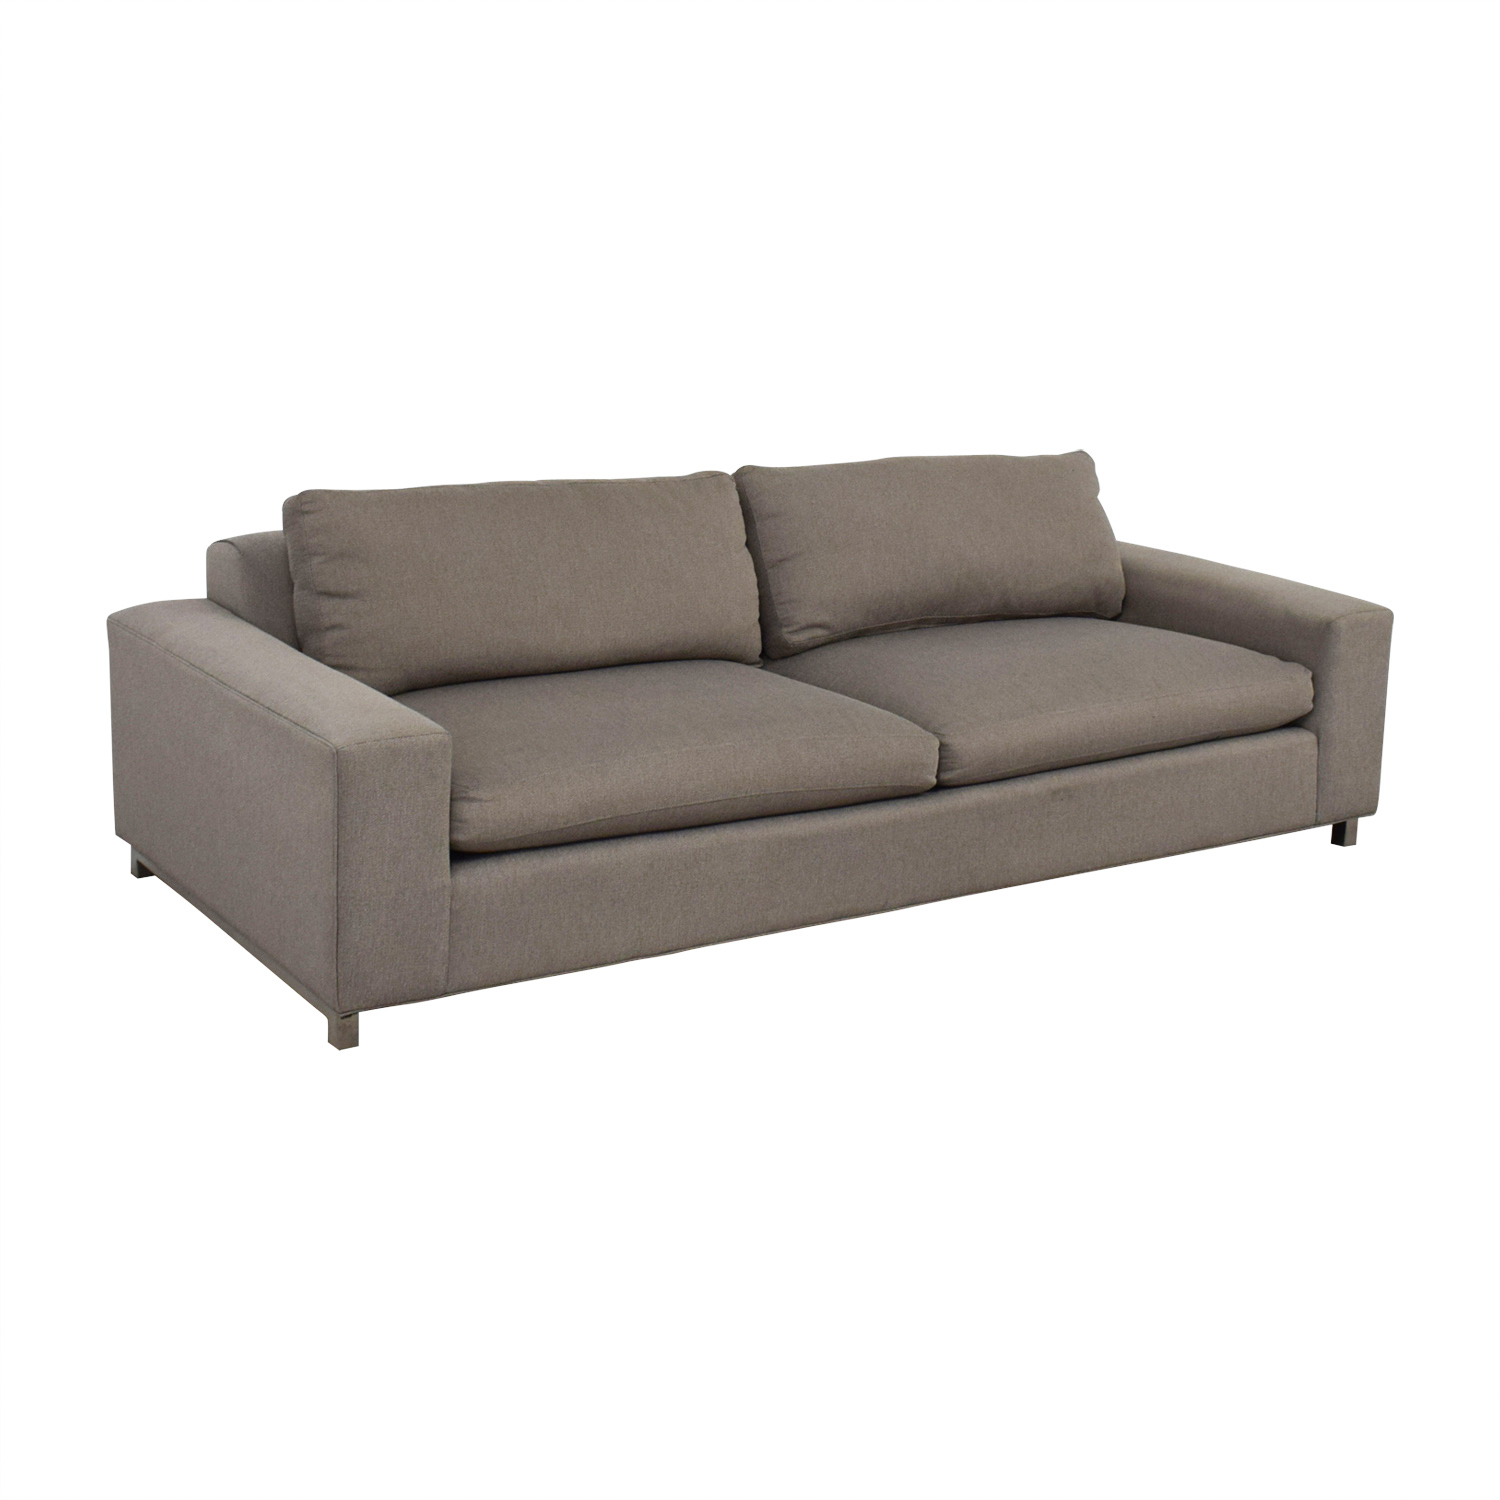 Room & Board Room & Board Klein Tula Putty Two-Cushion Sofa second hand